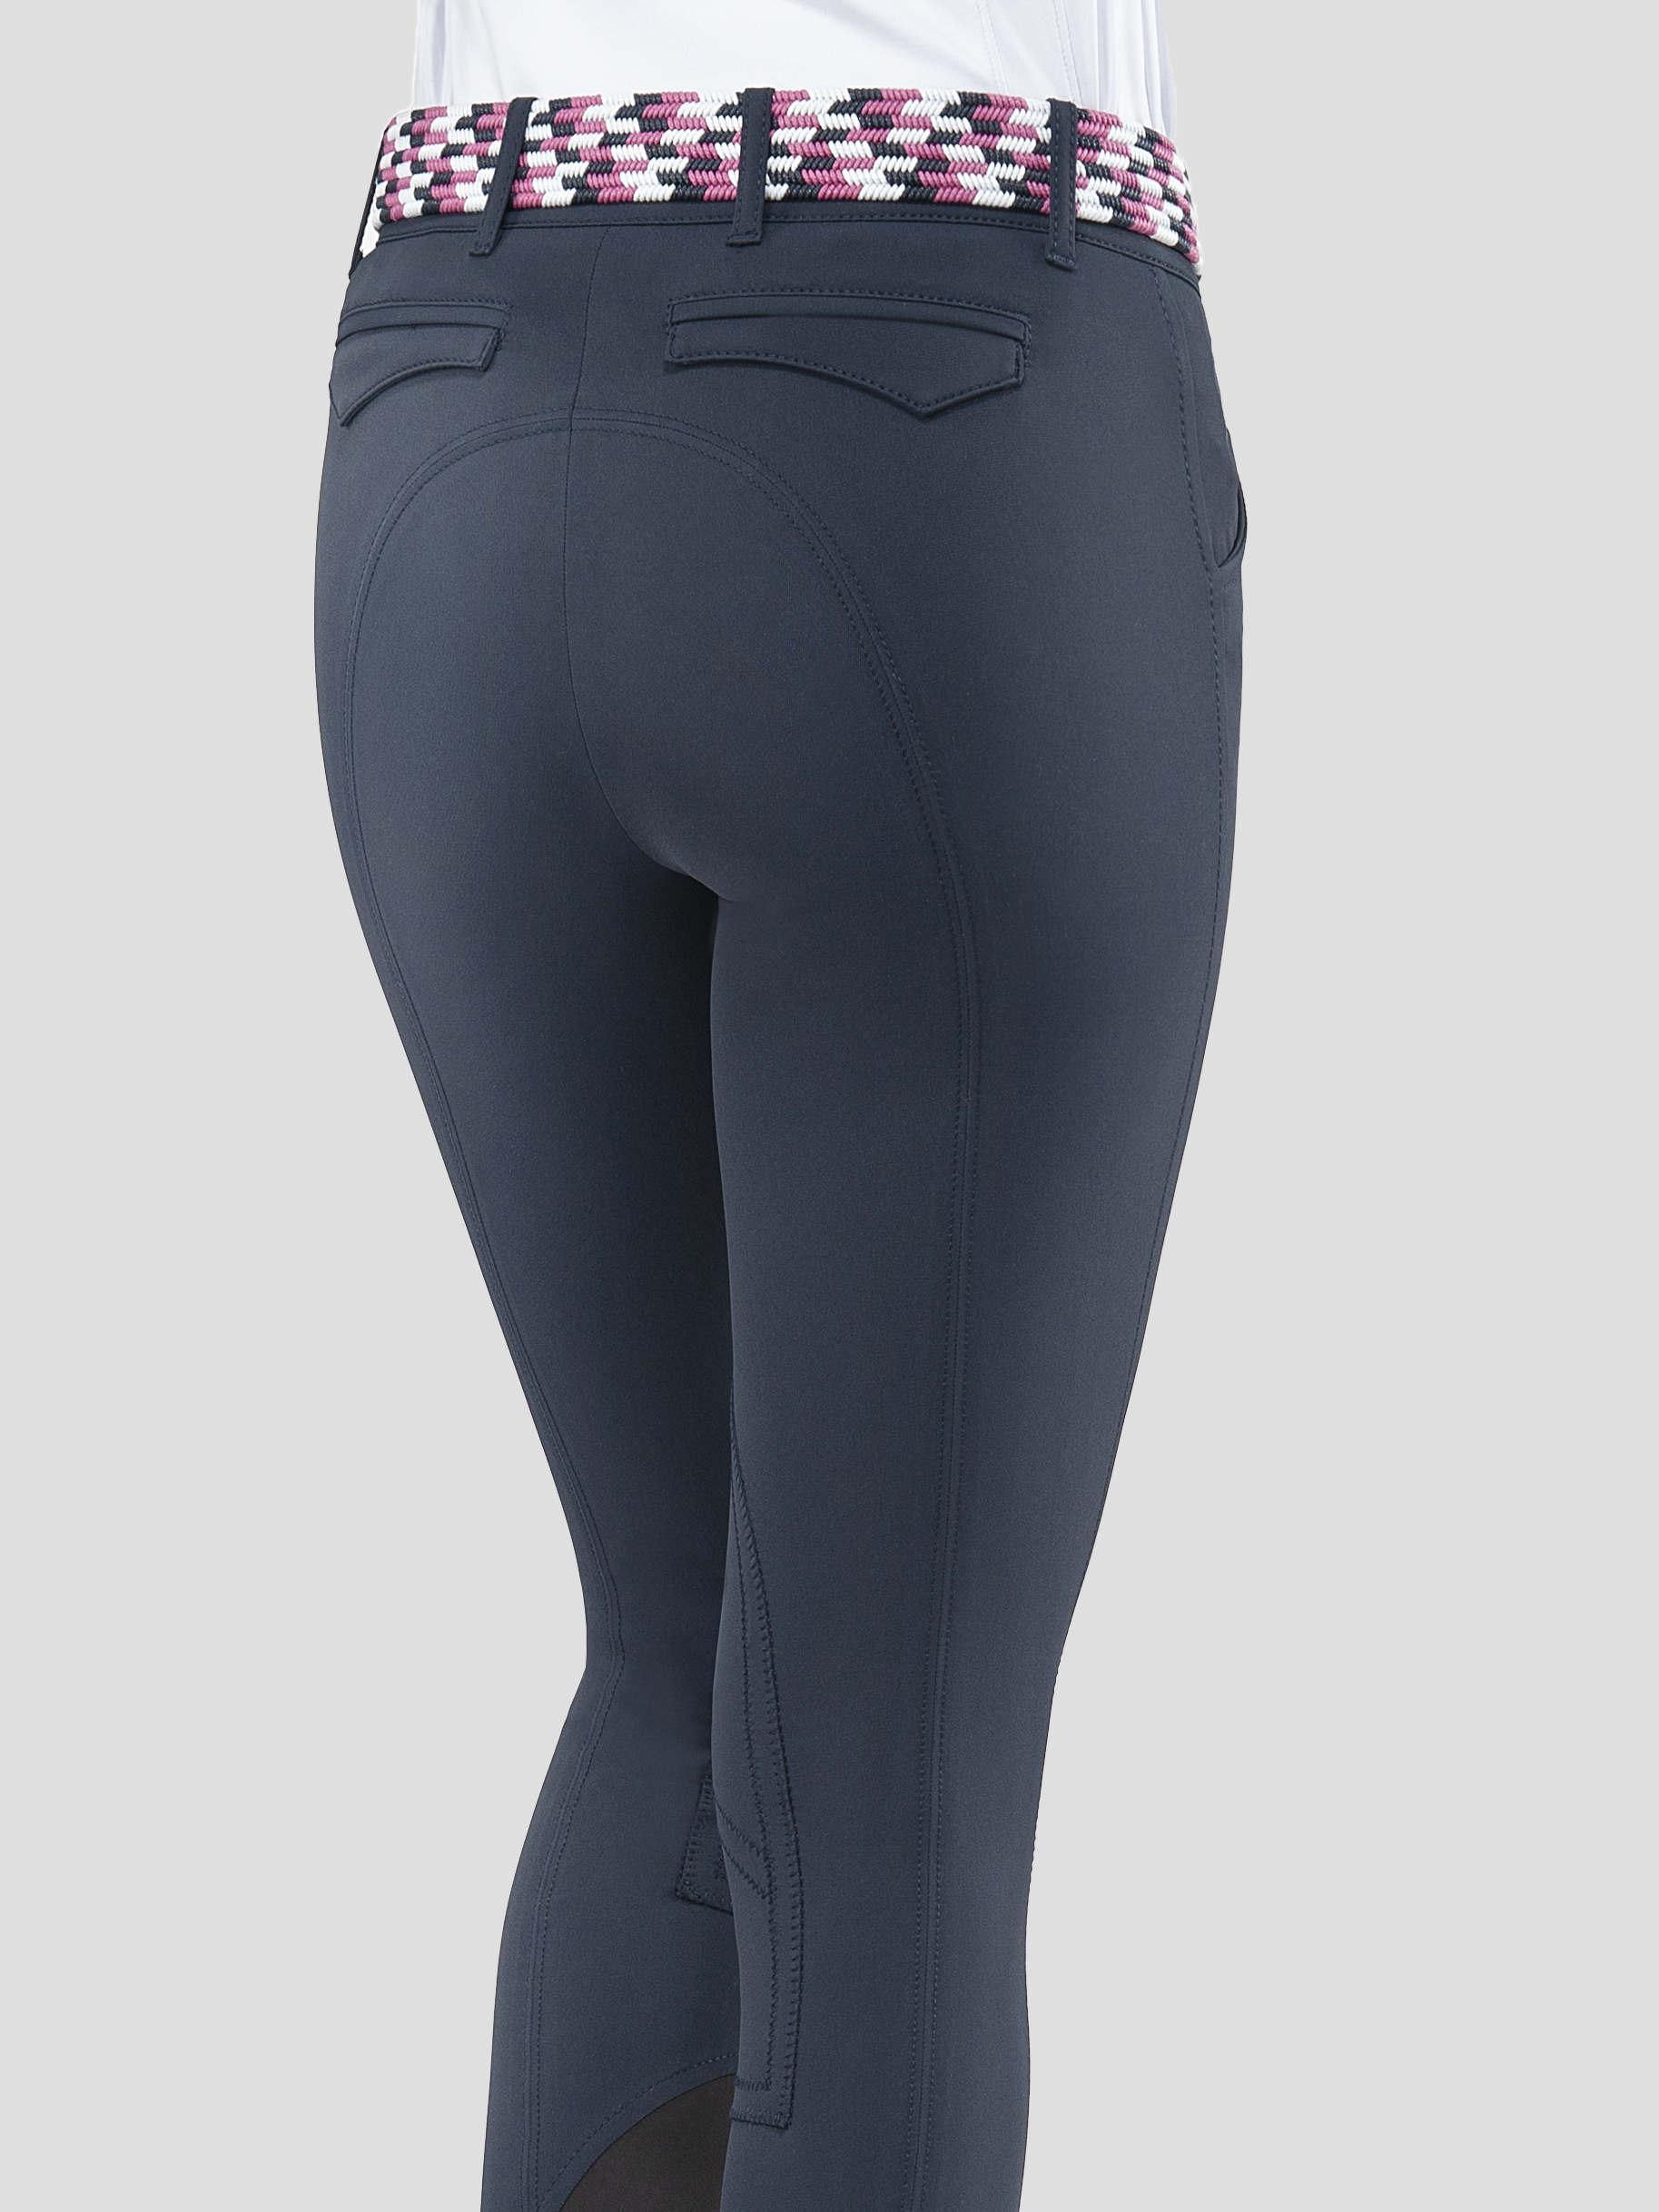 CALAMITY WOMEN'S KNEE PATCH BREECHES IN LEIGHT WEIGHT IN B-MOVE 4